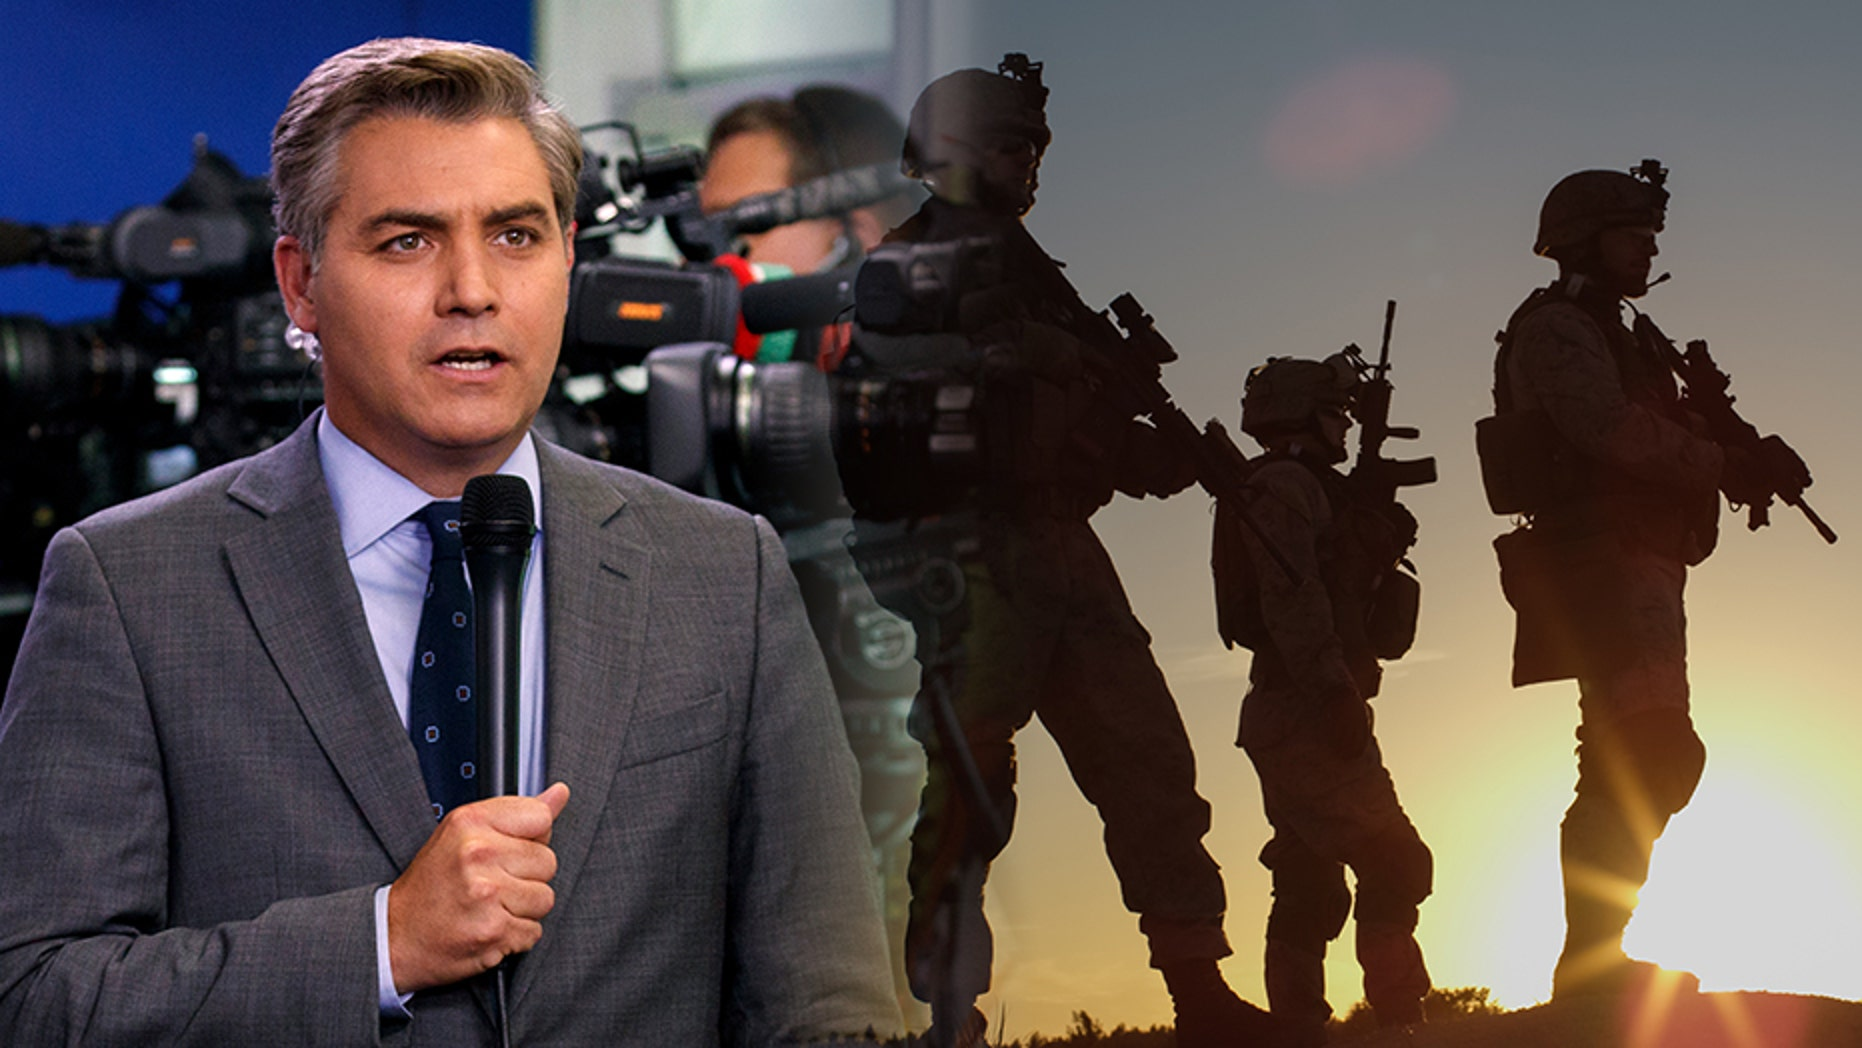 Cnn Oped Slammed For Comparing Military To The Media Says Both Are  A Cnn Opinion Column Declares That Media Members And Soldiers Are Both  Protecting Our Freedoms Essays On The Yellow Wallpaper also What Is The Thesis In An Essay  Sample Narrative Essay High School